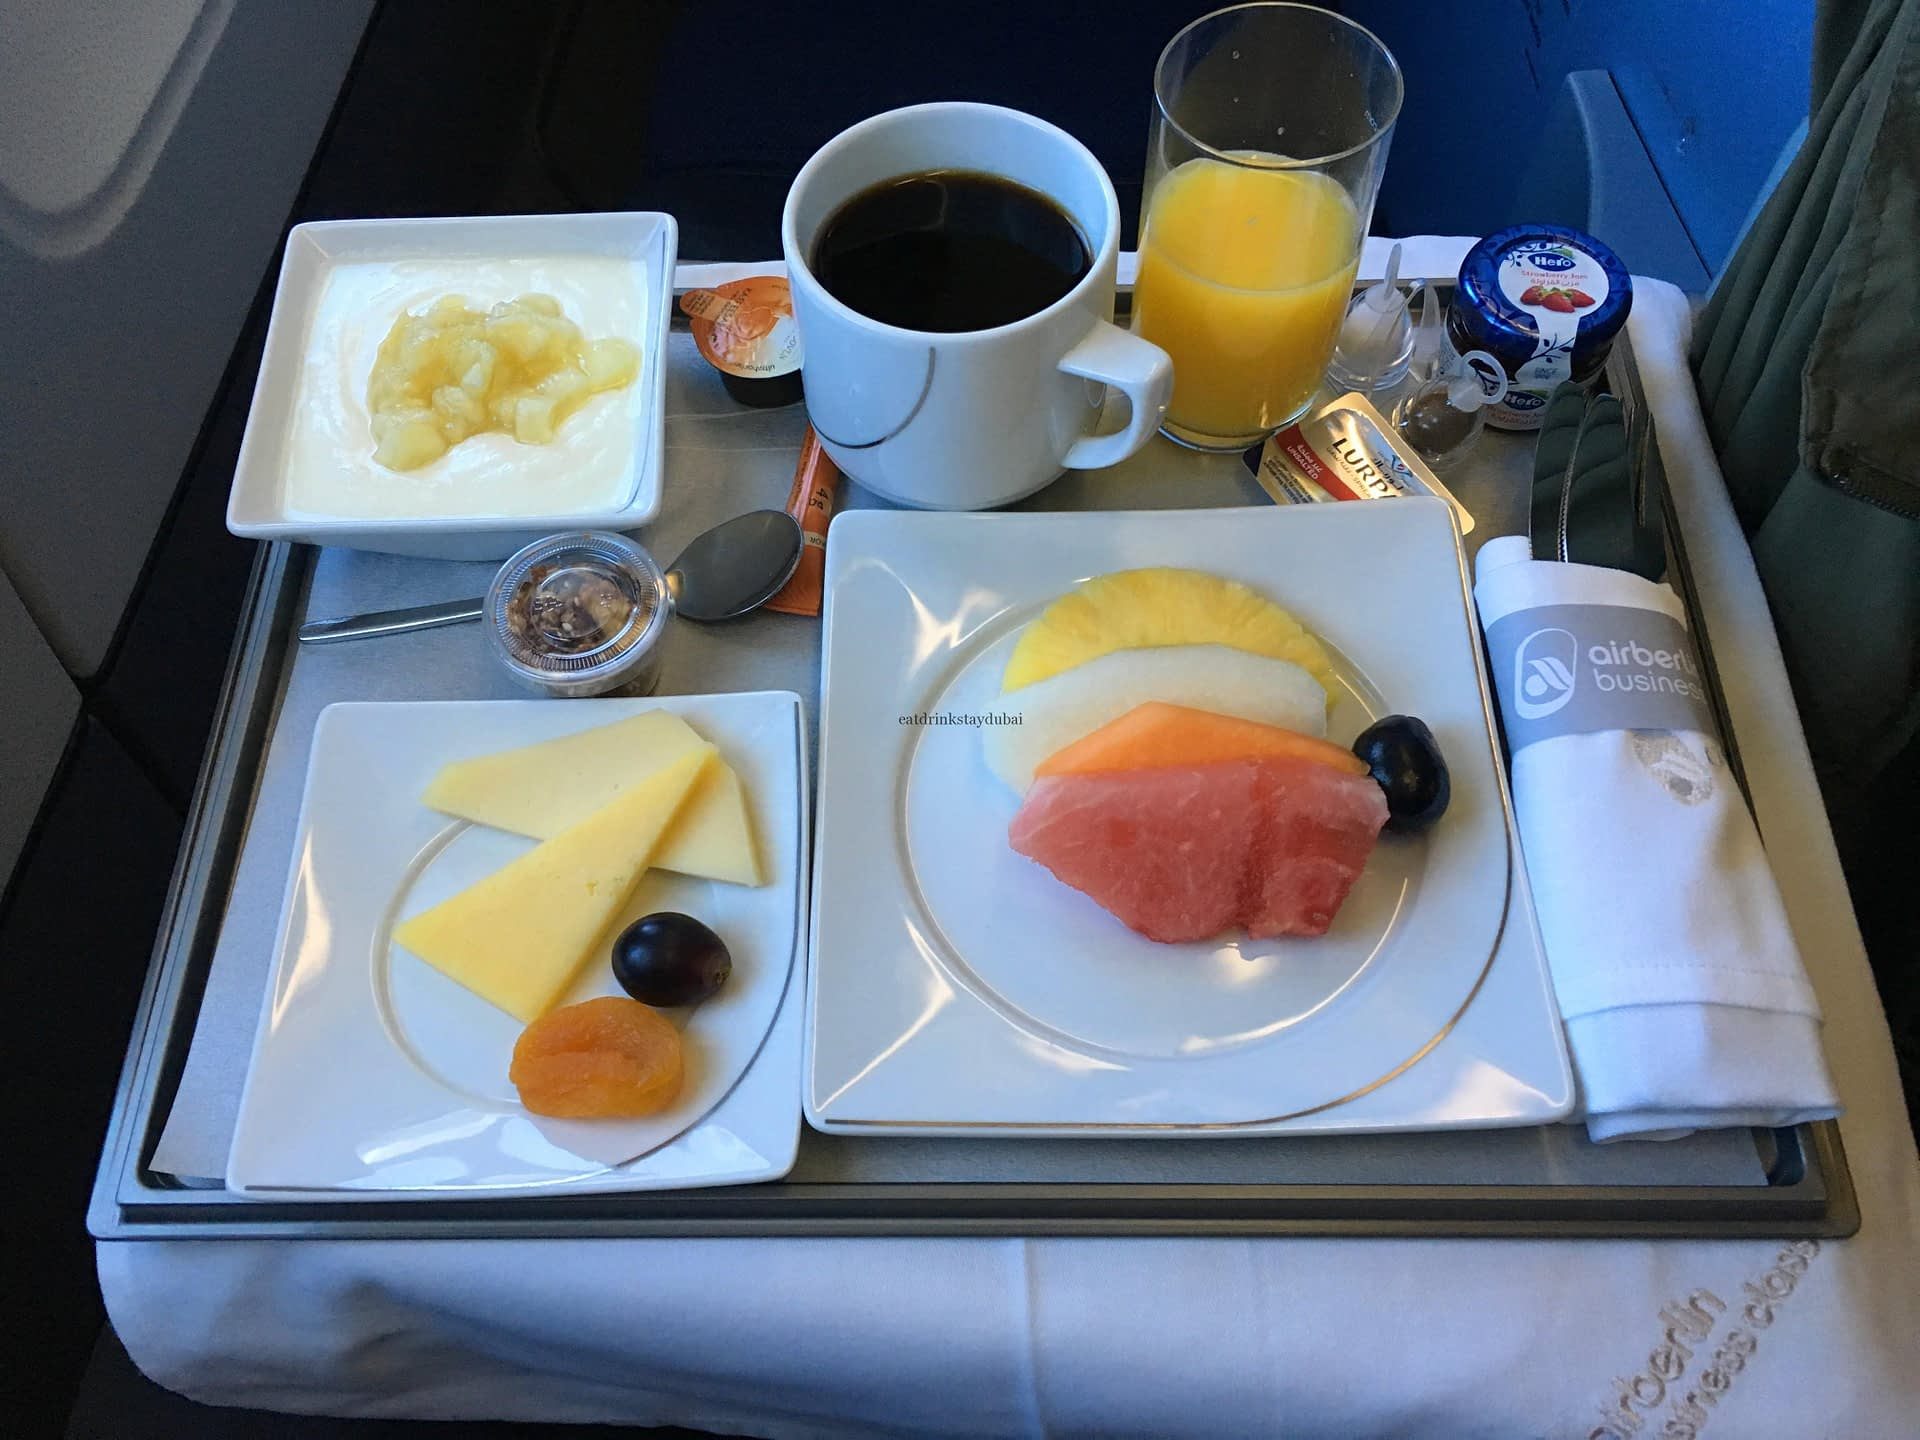 air-berlin-business-class-a330-200-ab-7495-auh-txl_breakfast-01